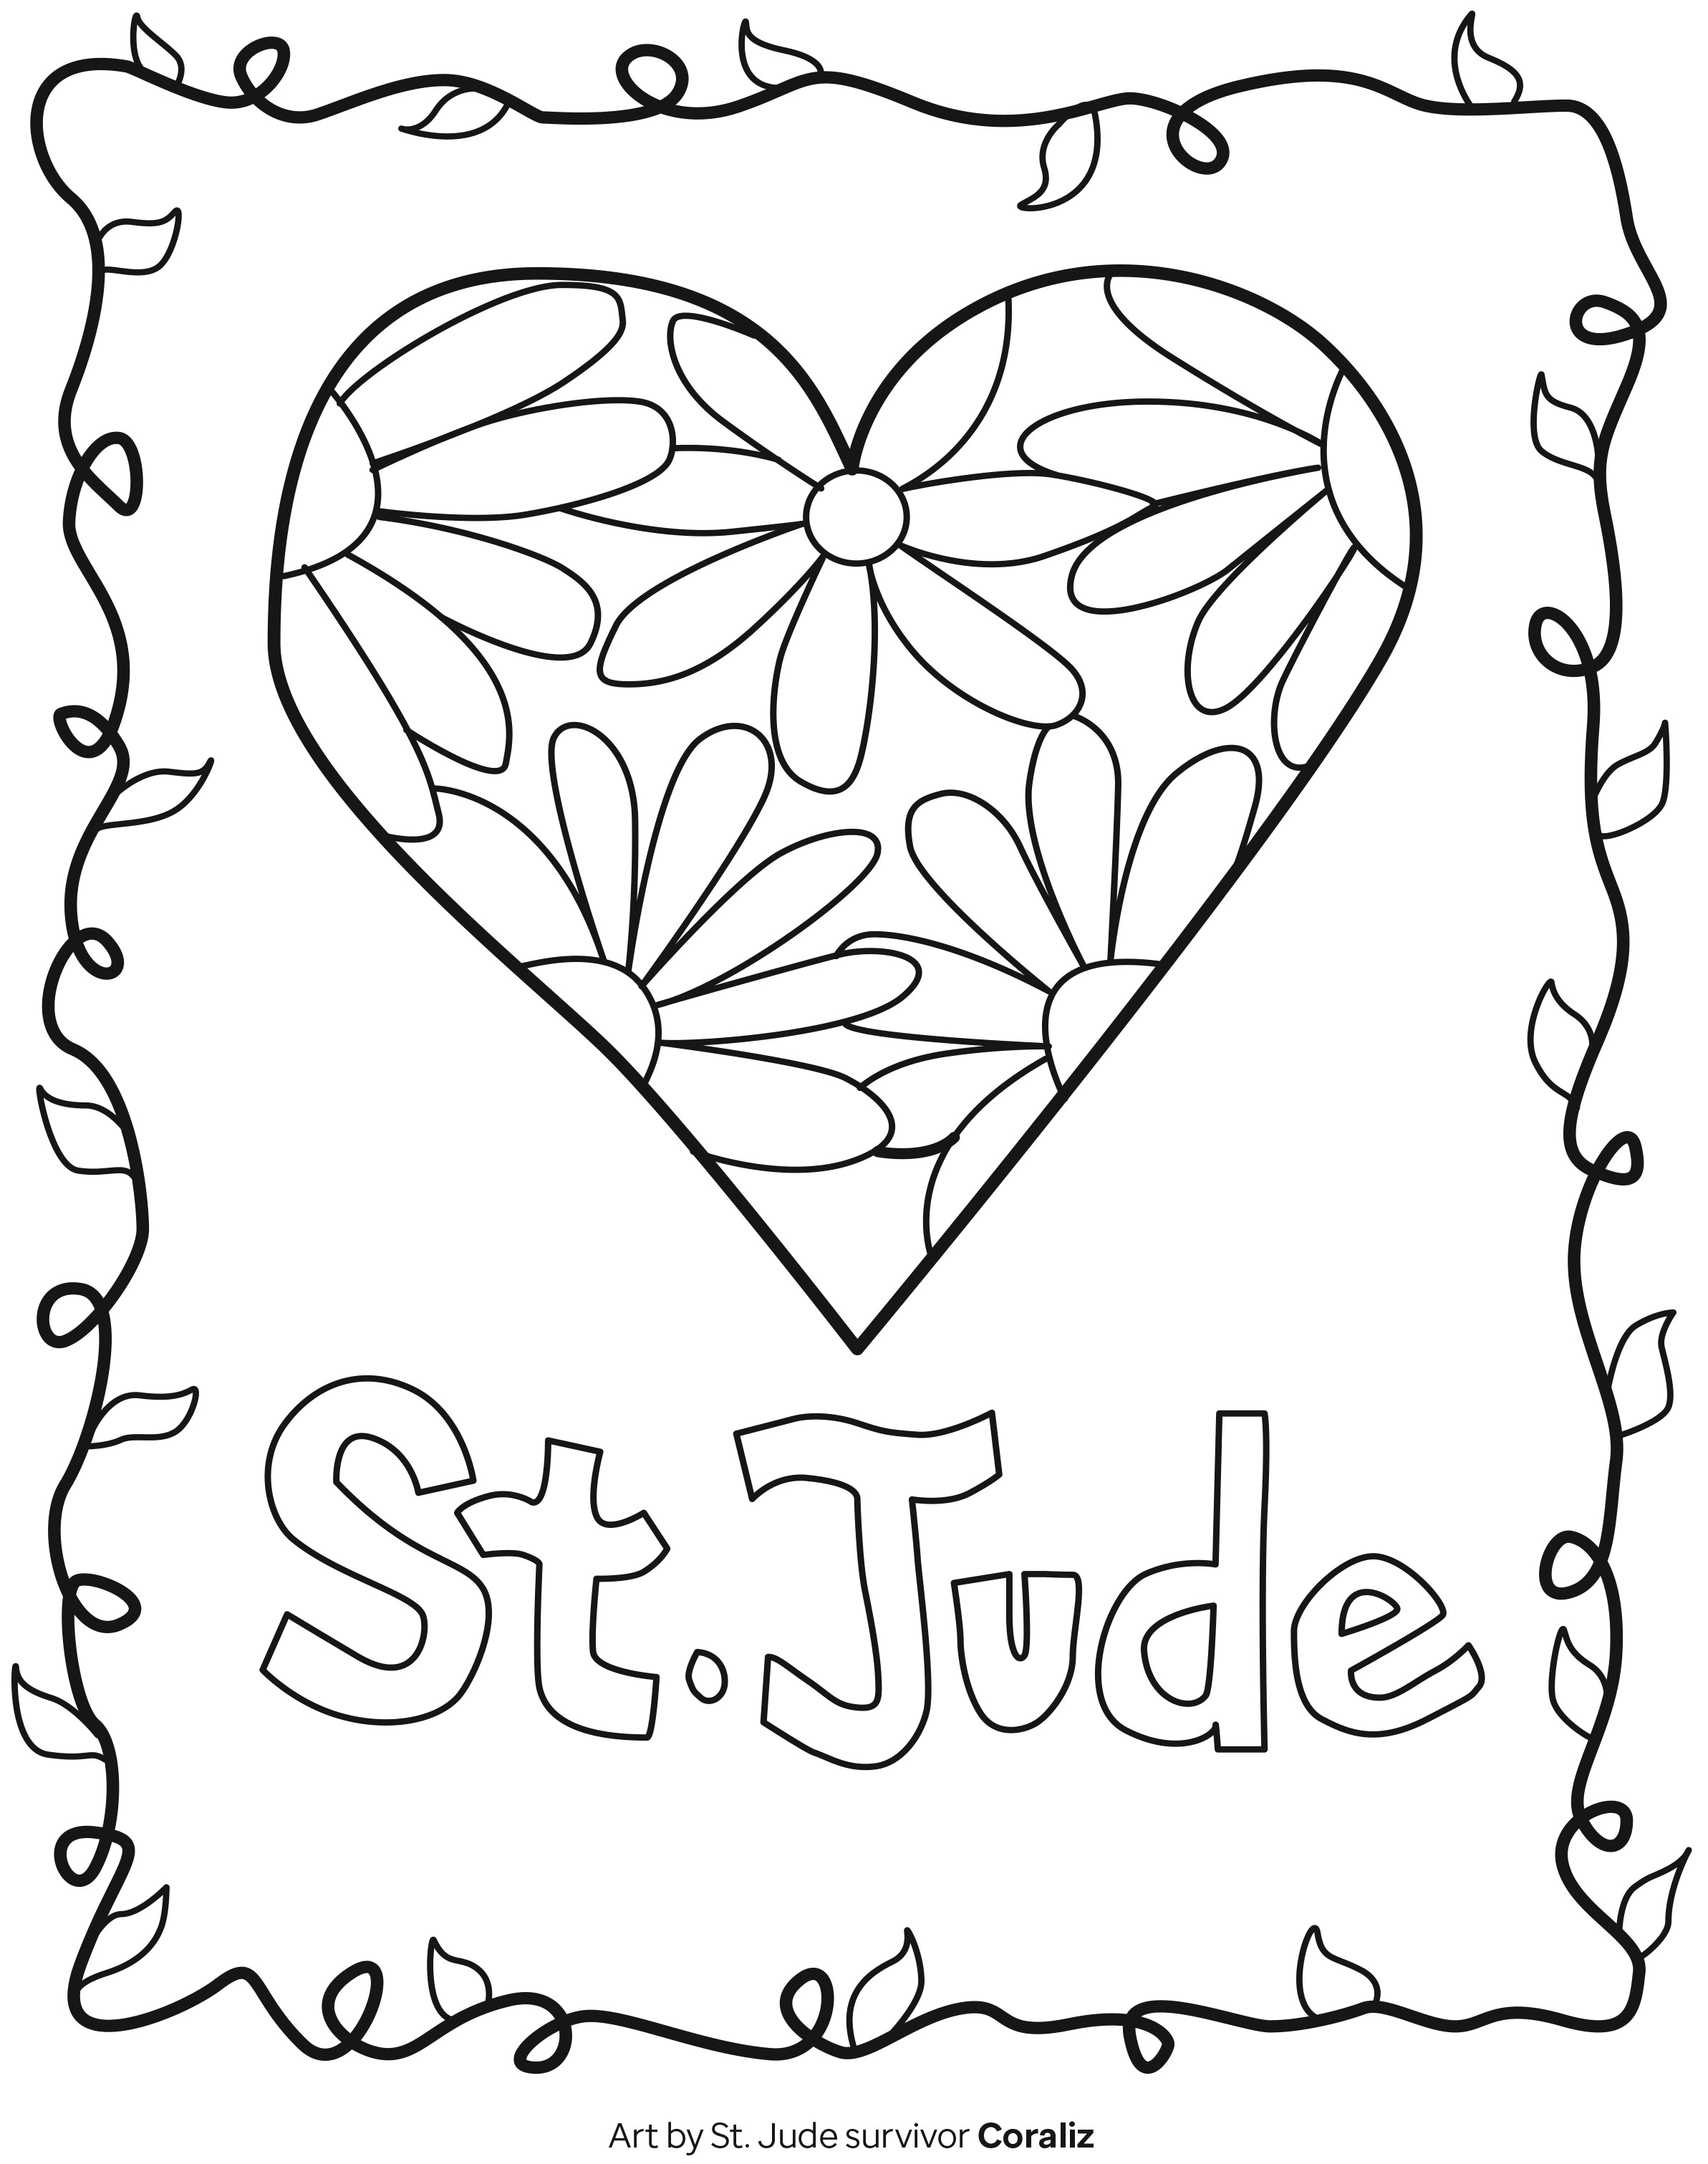 Coloring Pages And Games For Kids Print For Free St Jude Children S Research Hospital